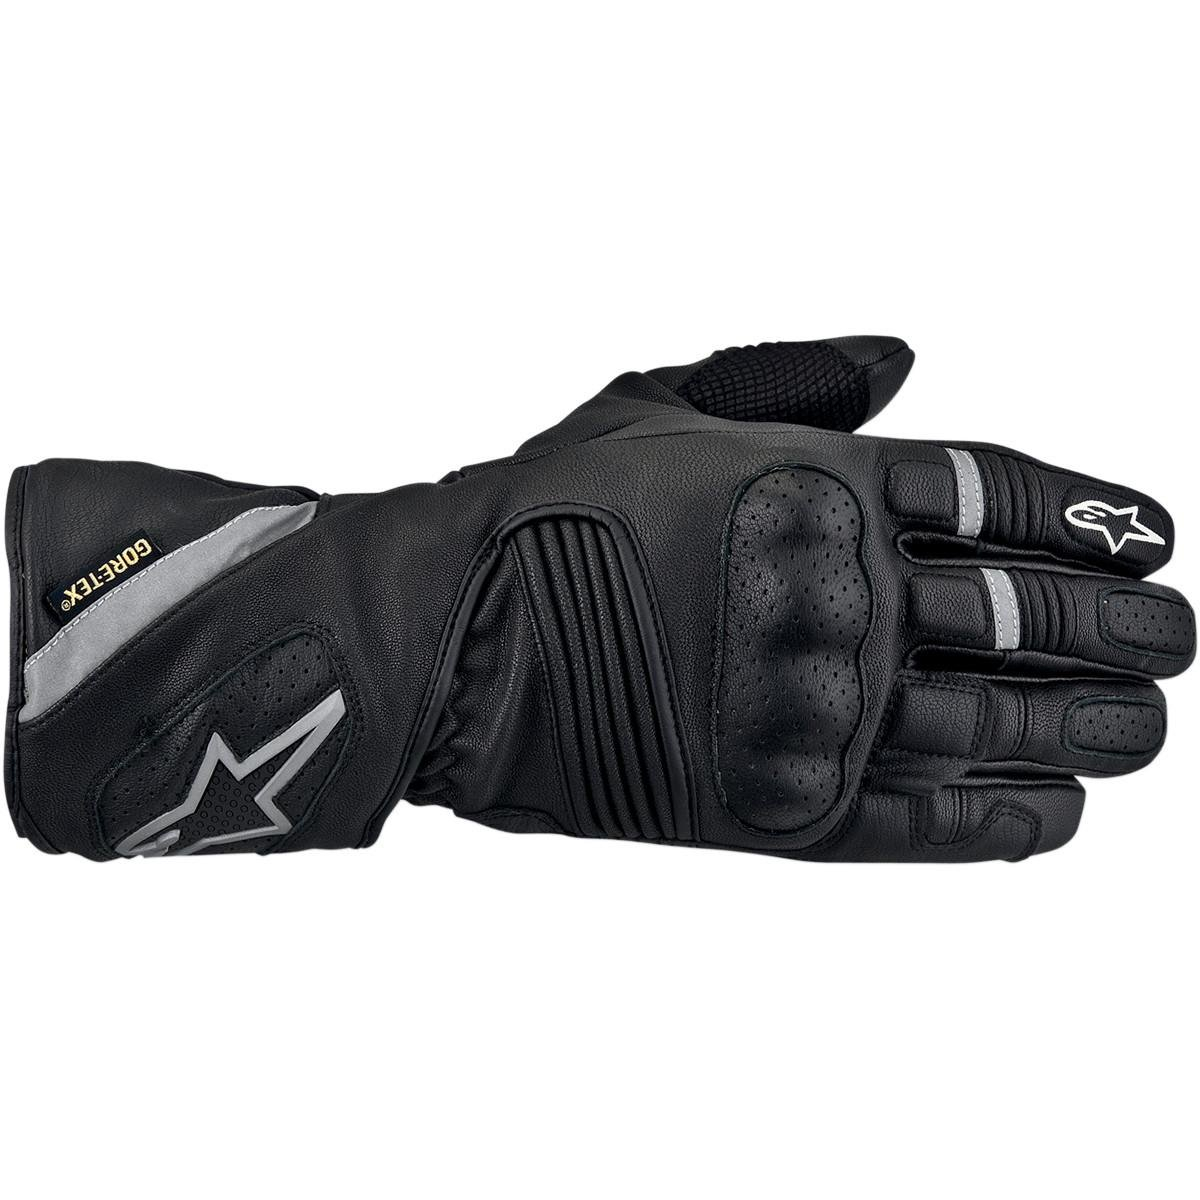 Xtrafit motorcycle gloves - Alpinestars Wr 3 Gore Tex Motorcycle Gloves